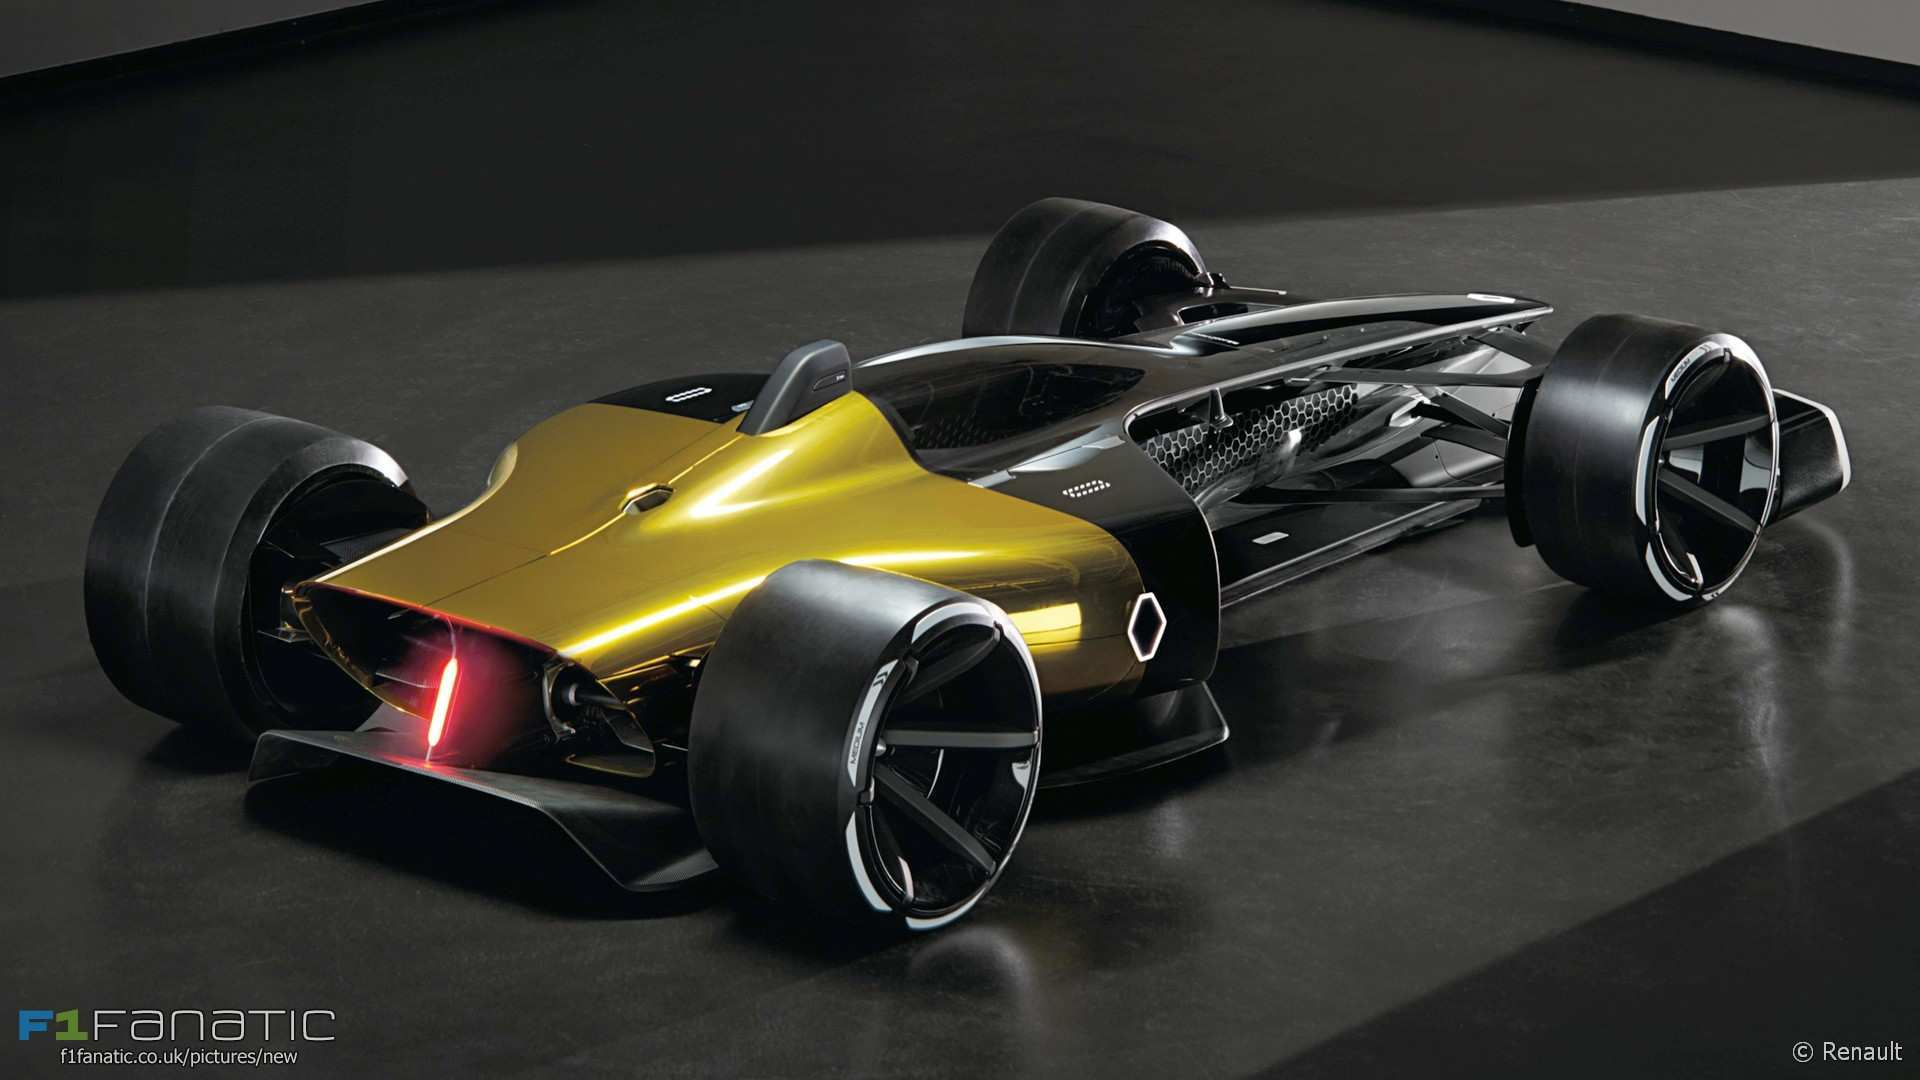 54 All New Renault 2020 F1 Review